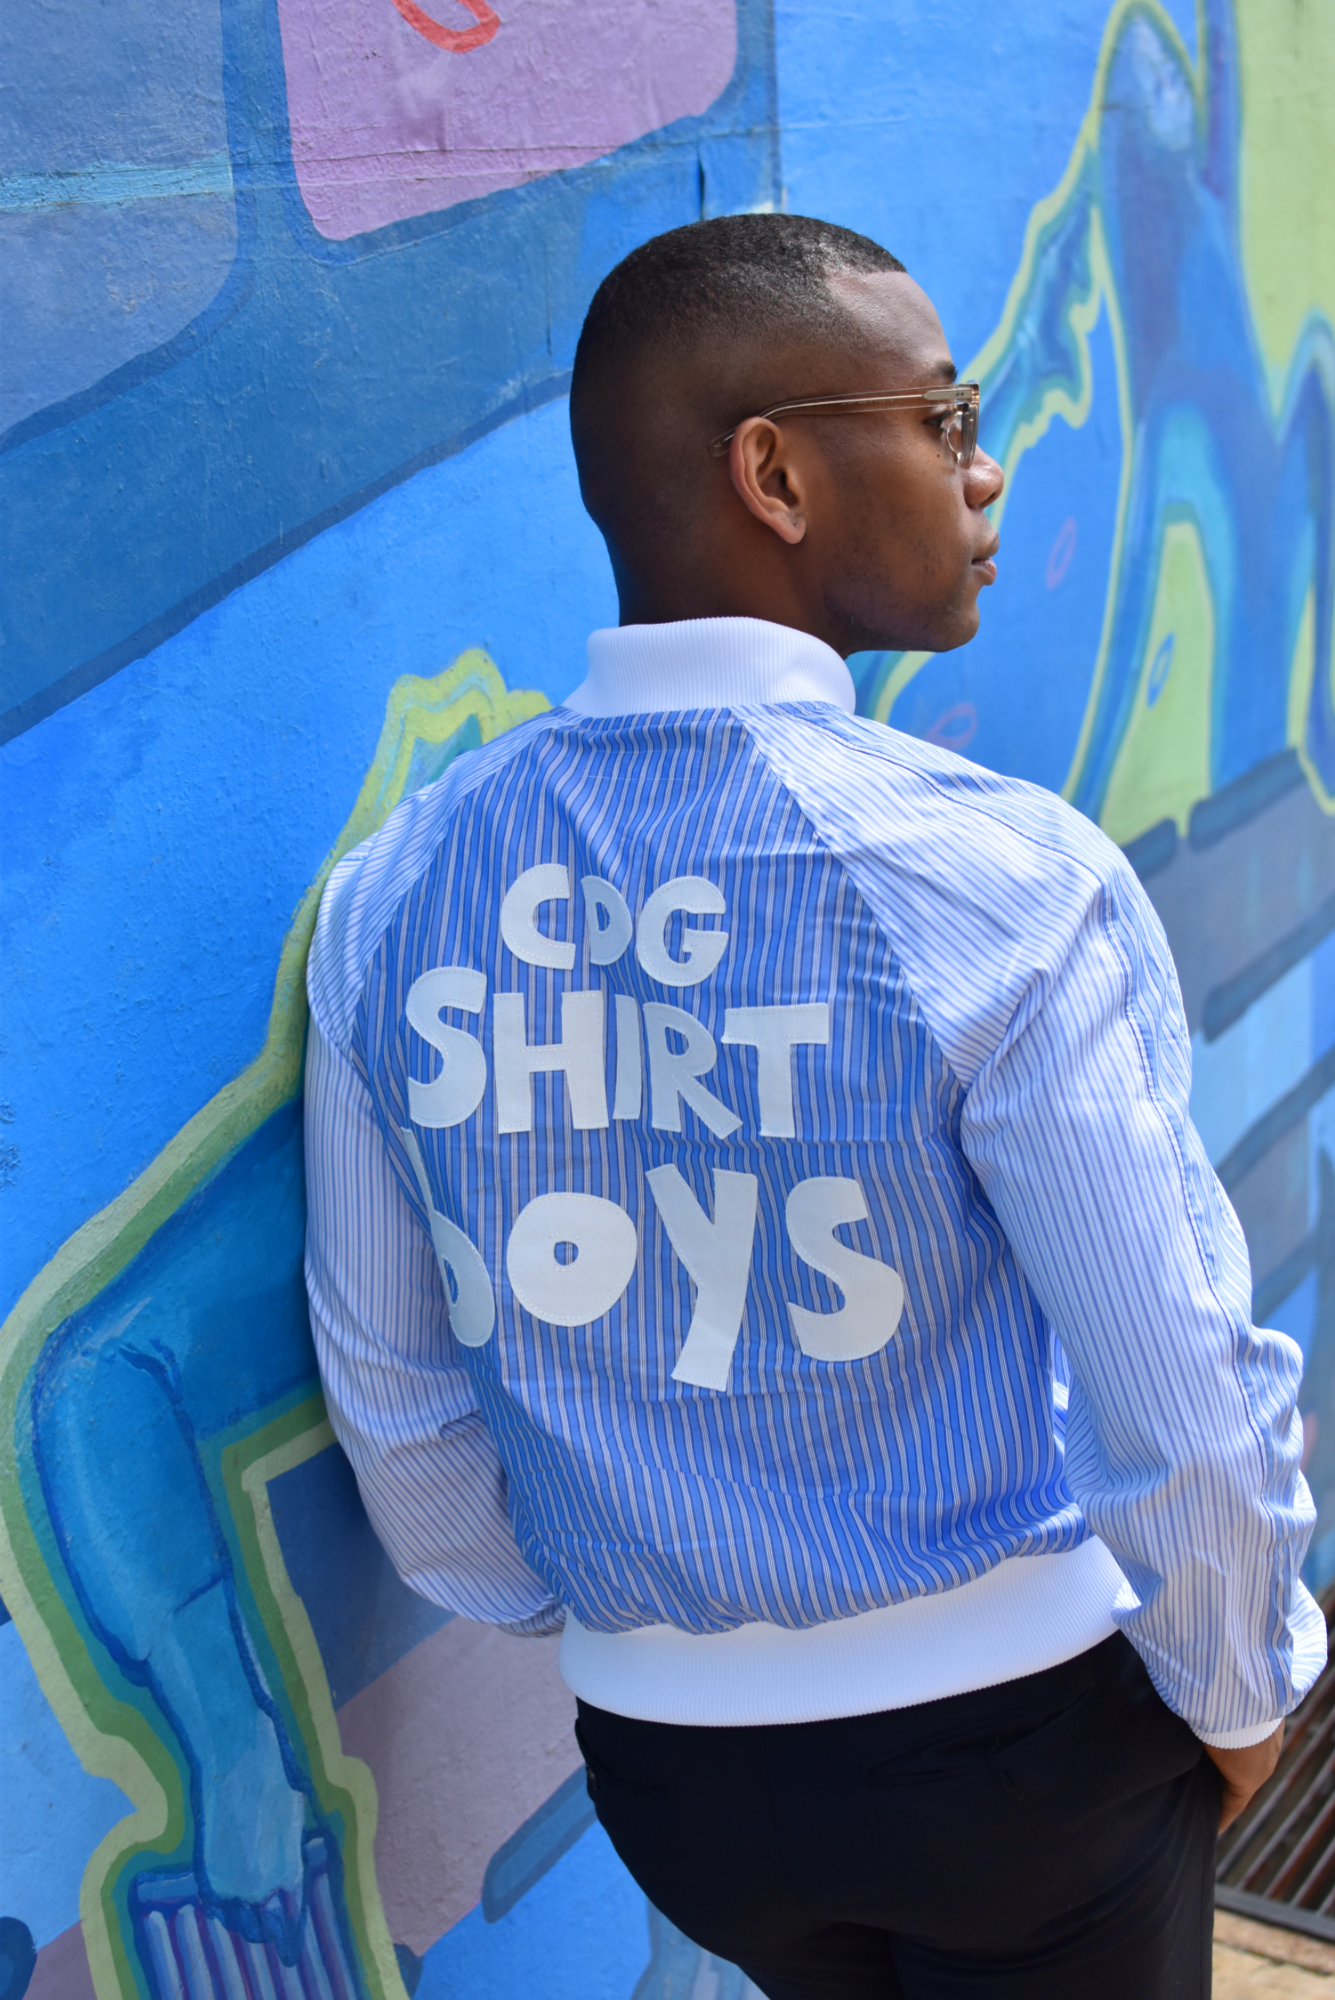 Sabir M. Peele of Men's Style Pro wearing Comme des Garcons Shirt Bomber Jacket